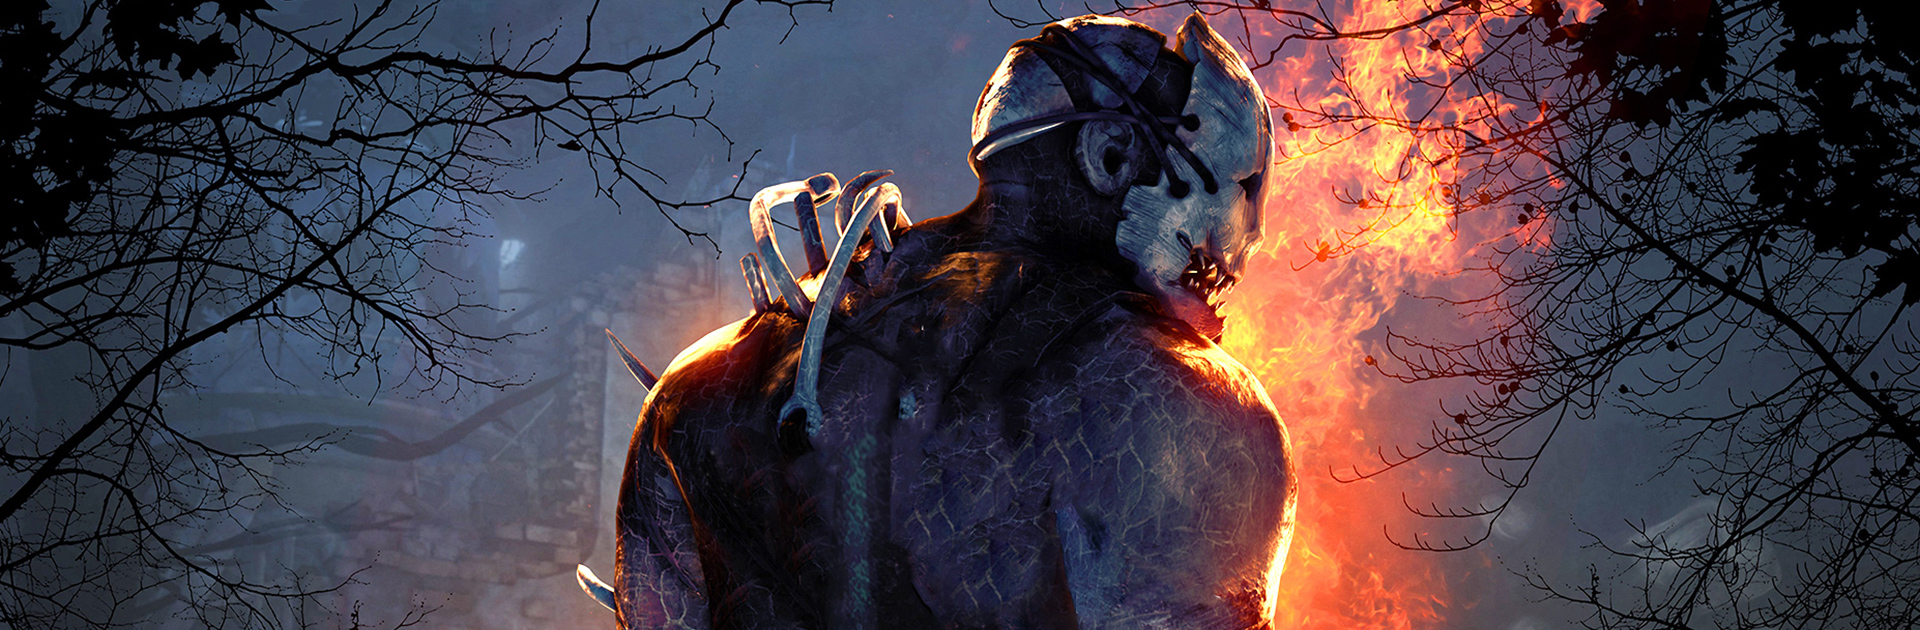 Dead by Daylight Announces 2020 International Tour